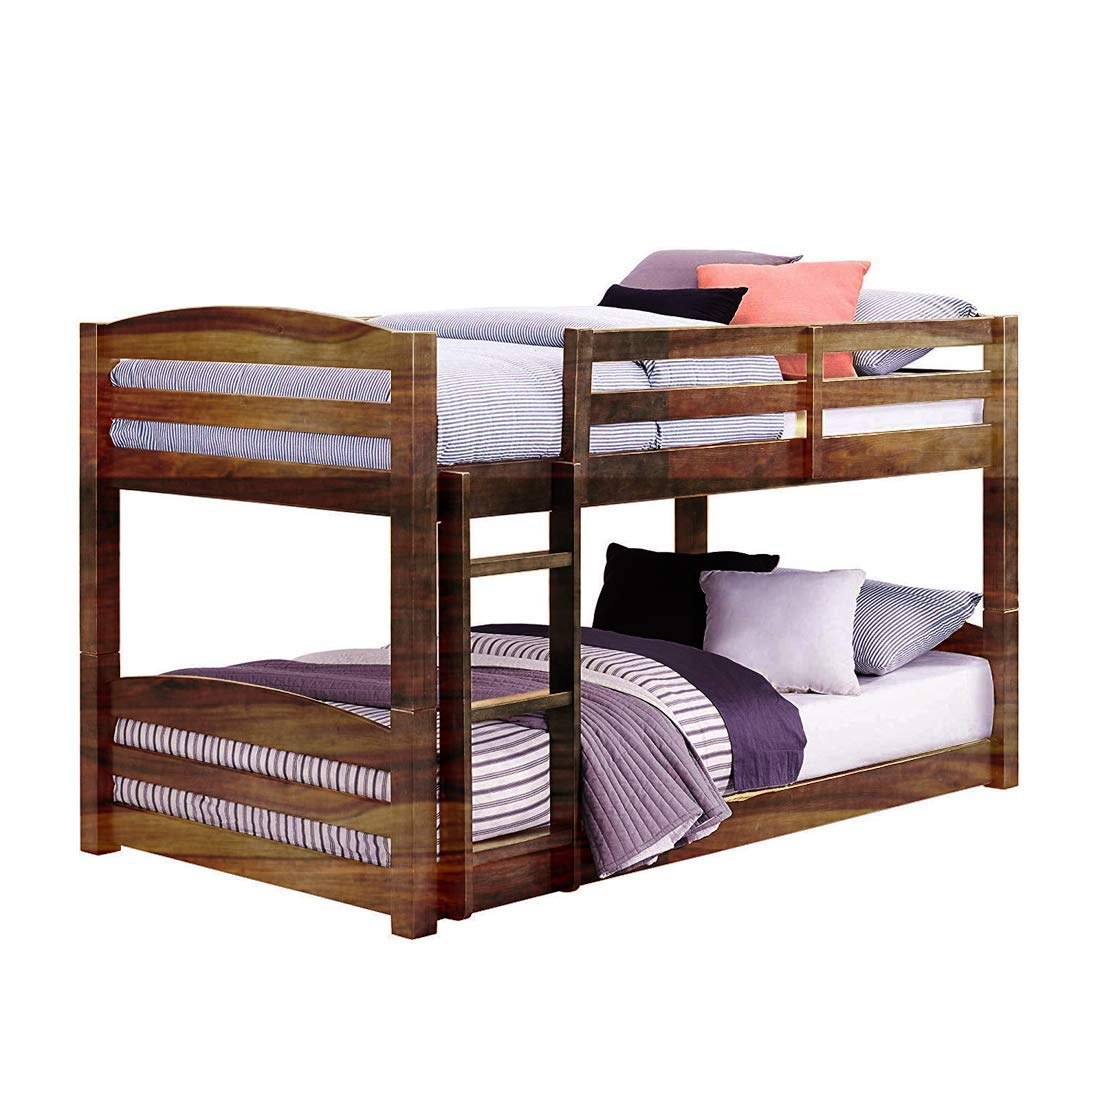 Hybul Shipry Bunk Bed for Children Furniture